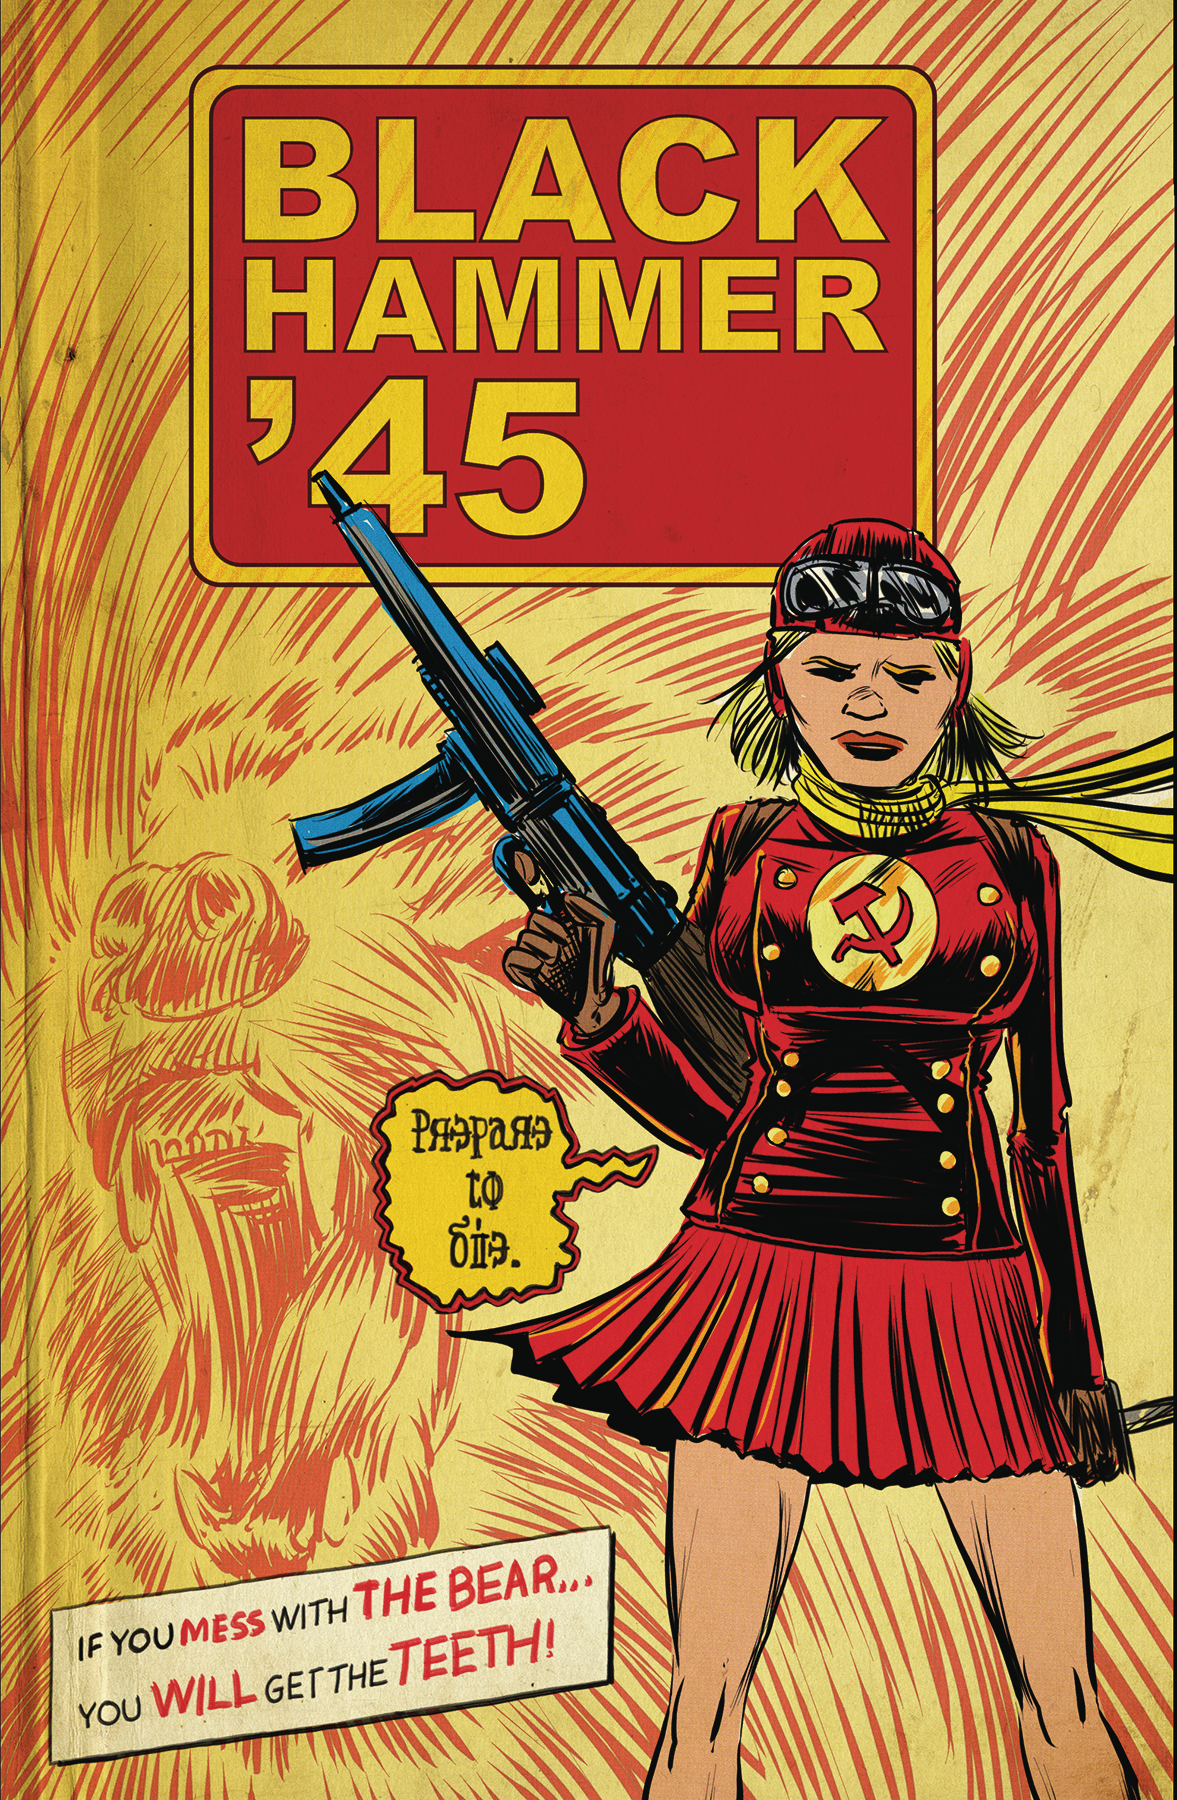 OPACK HAMMER 45 FROM WORLD OF BLACK HAMMER #3 CVR A KINDT